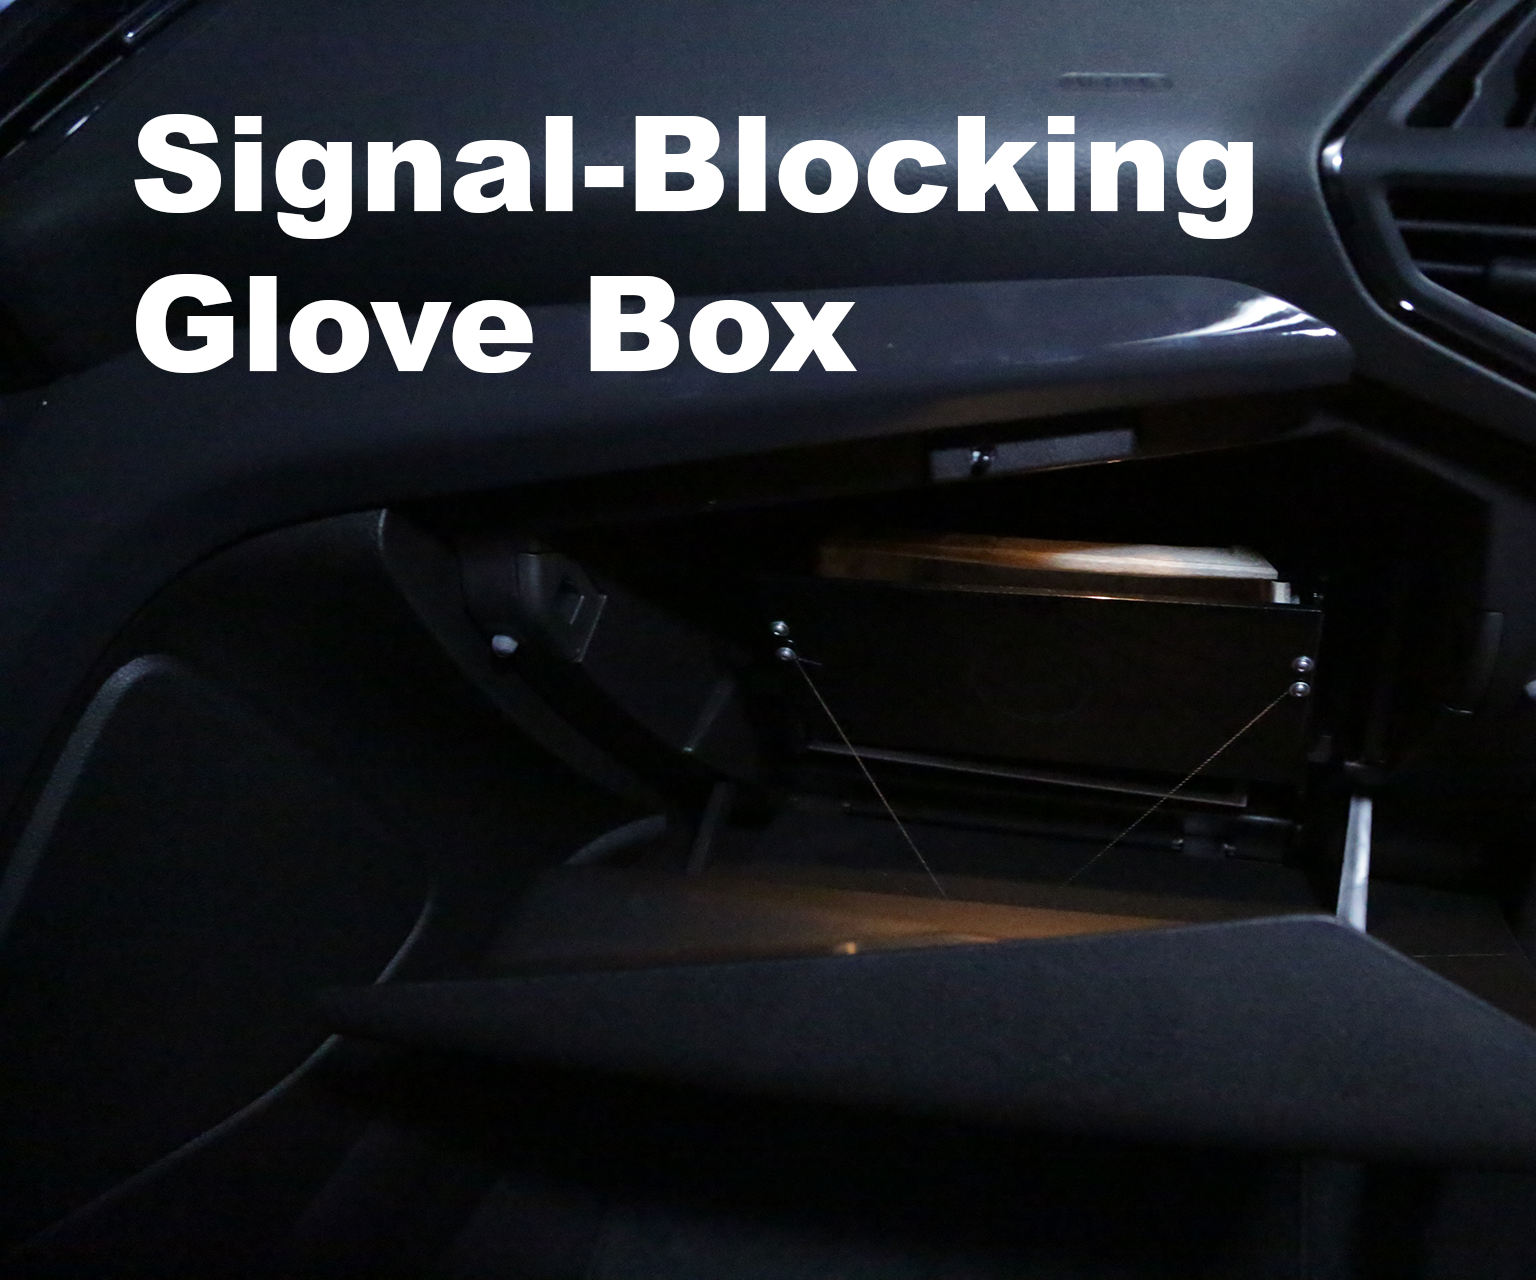 Signal-Blocking Glove Box